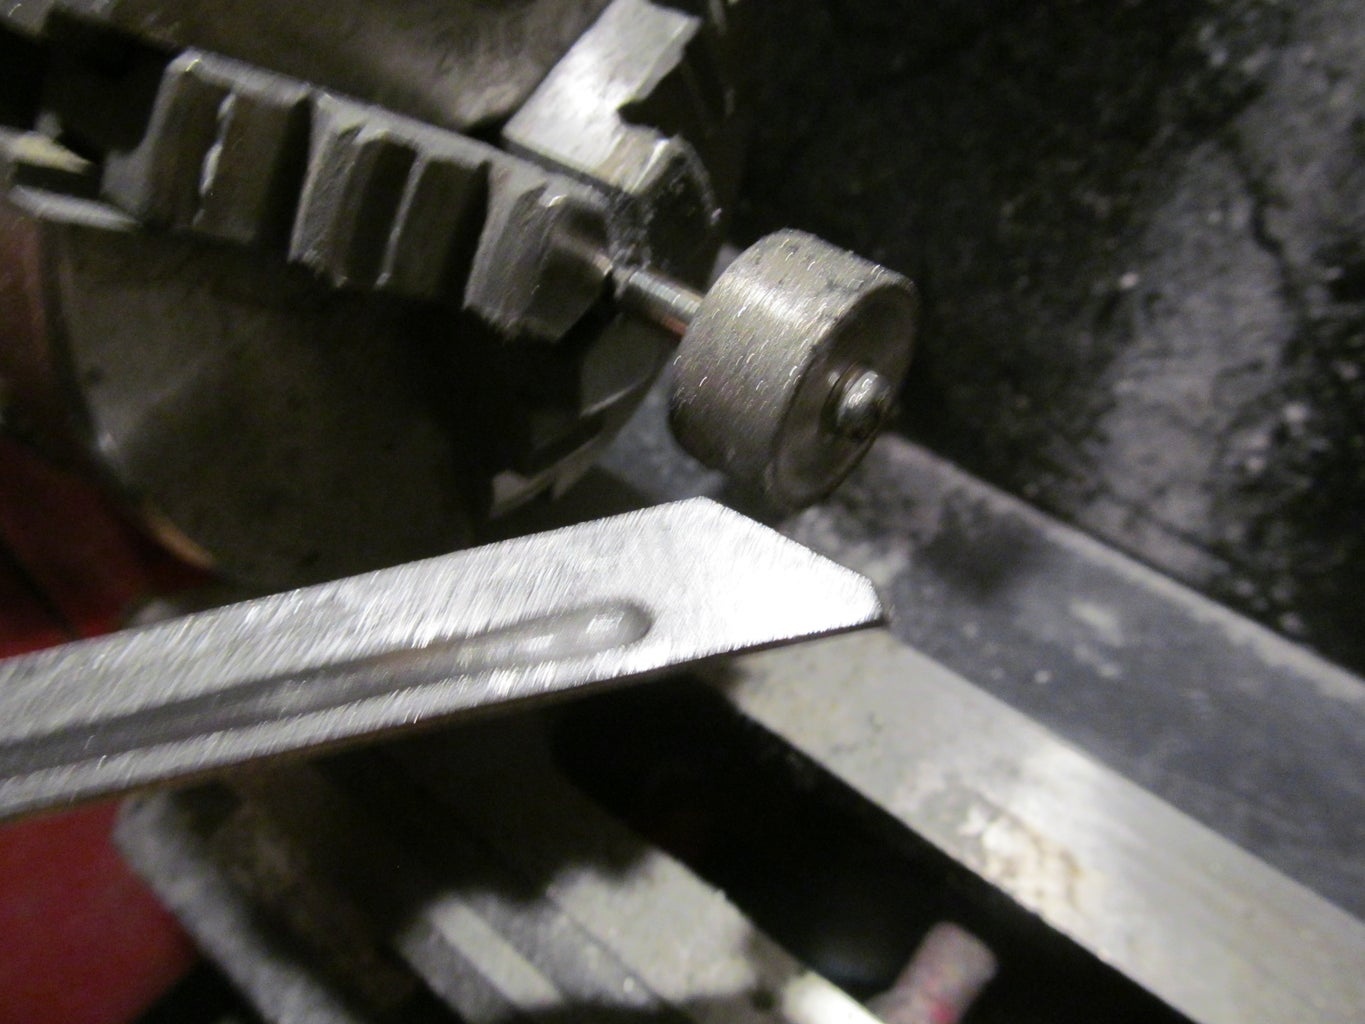 Shaping the Blade